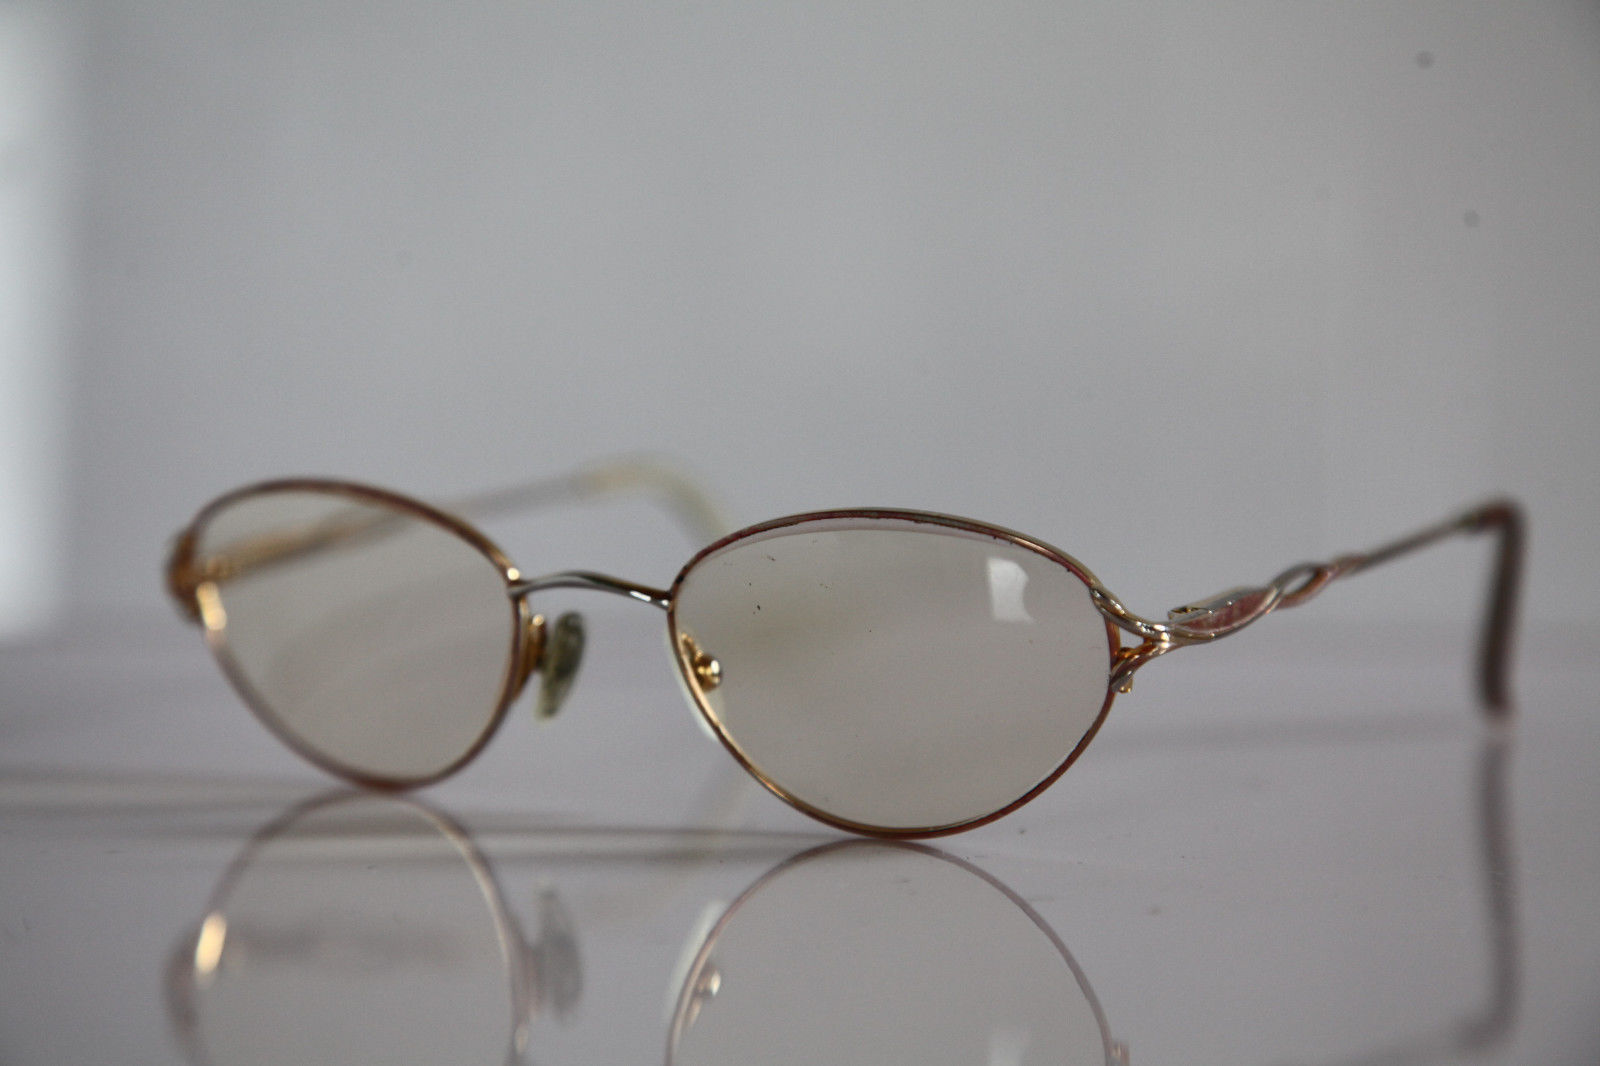 Eyewear,  Gold, Chrome Frame,  RX-Able  Prescription Lenses.